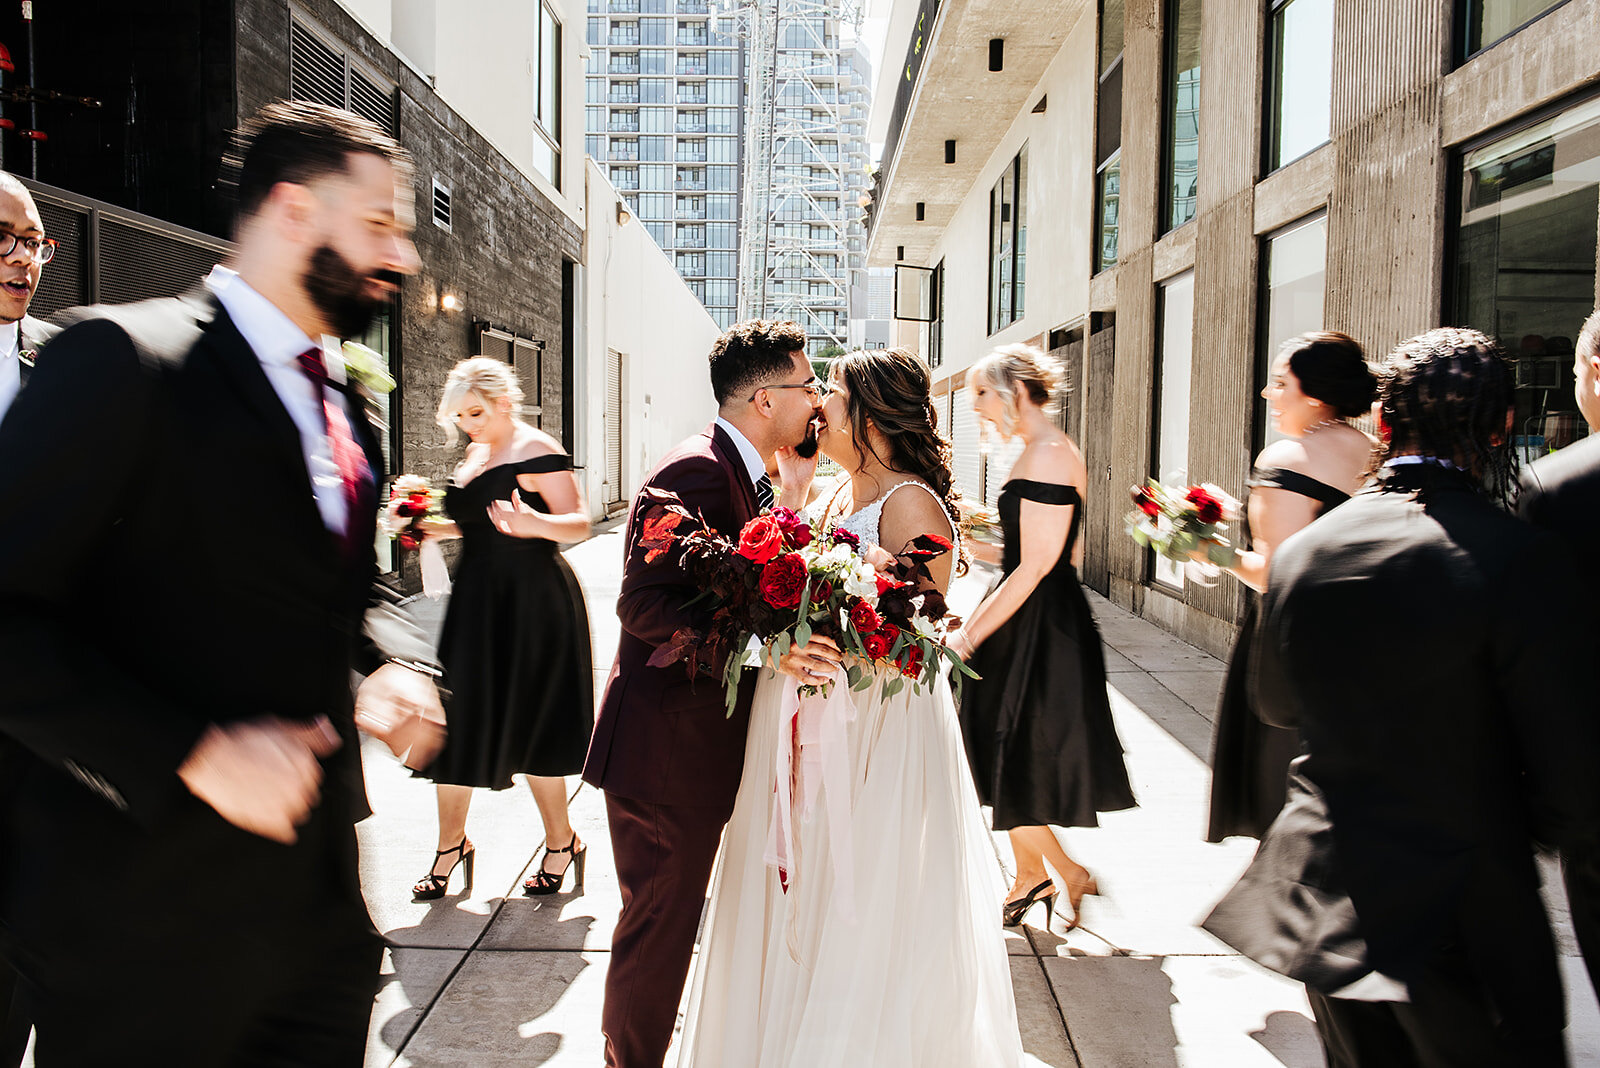 SoCal_Standard_-_San_Diego_Wedding_Photographer_-_JewelTone_Wedding_at_the_Sandbox_Venue_Downtown_San_Diego_-_Ray_and_Serina_-_bridal_party-191.jpg